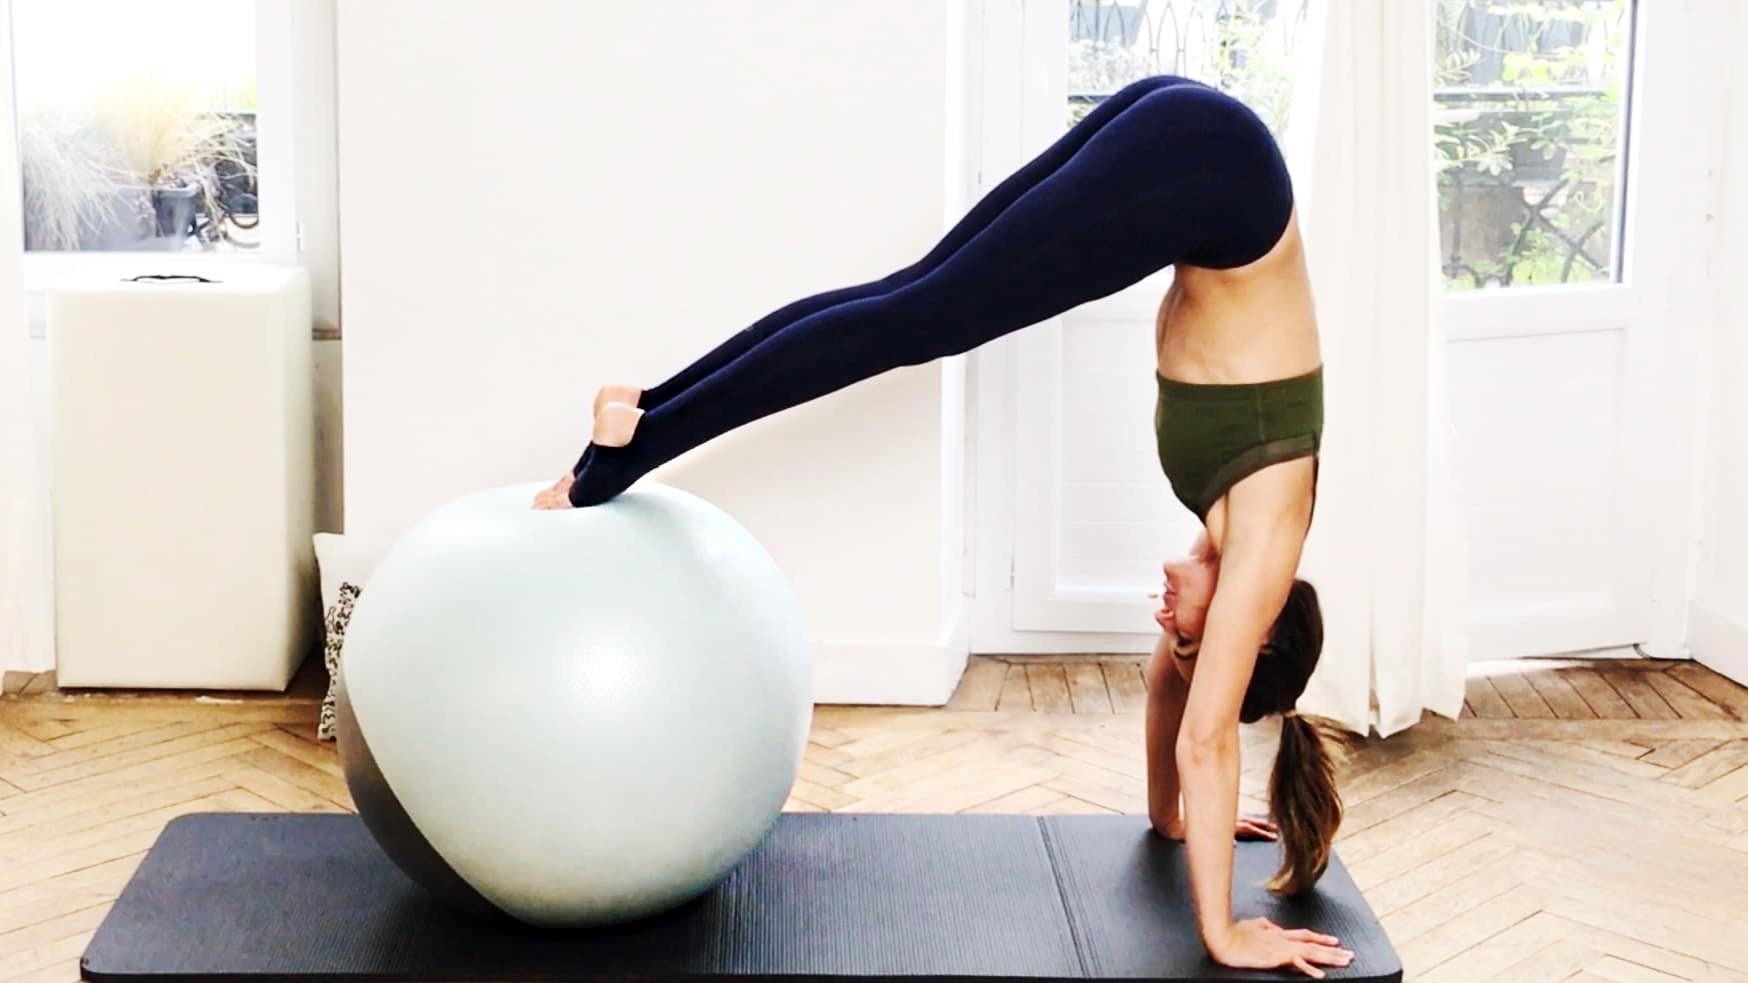 Day 5: Total Body Fitball Challenge by Gone Adventuring